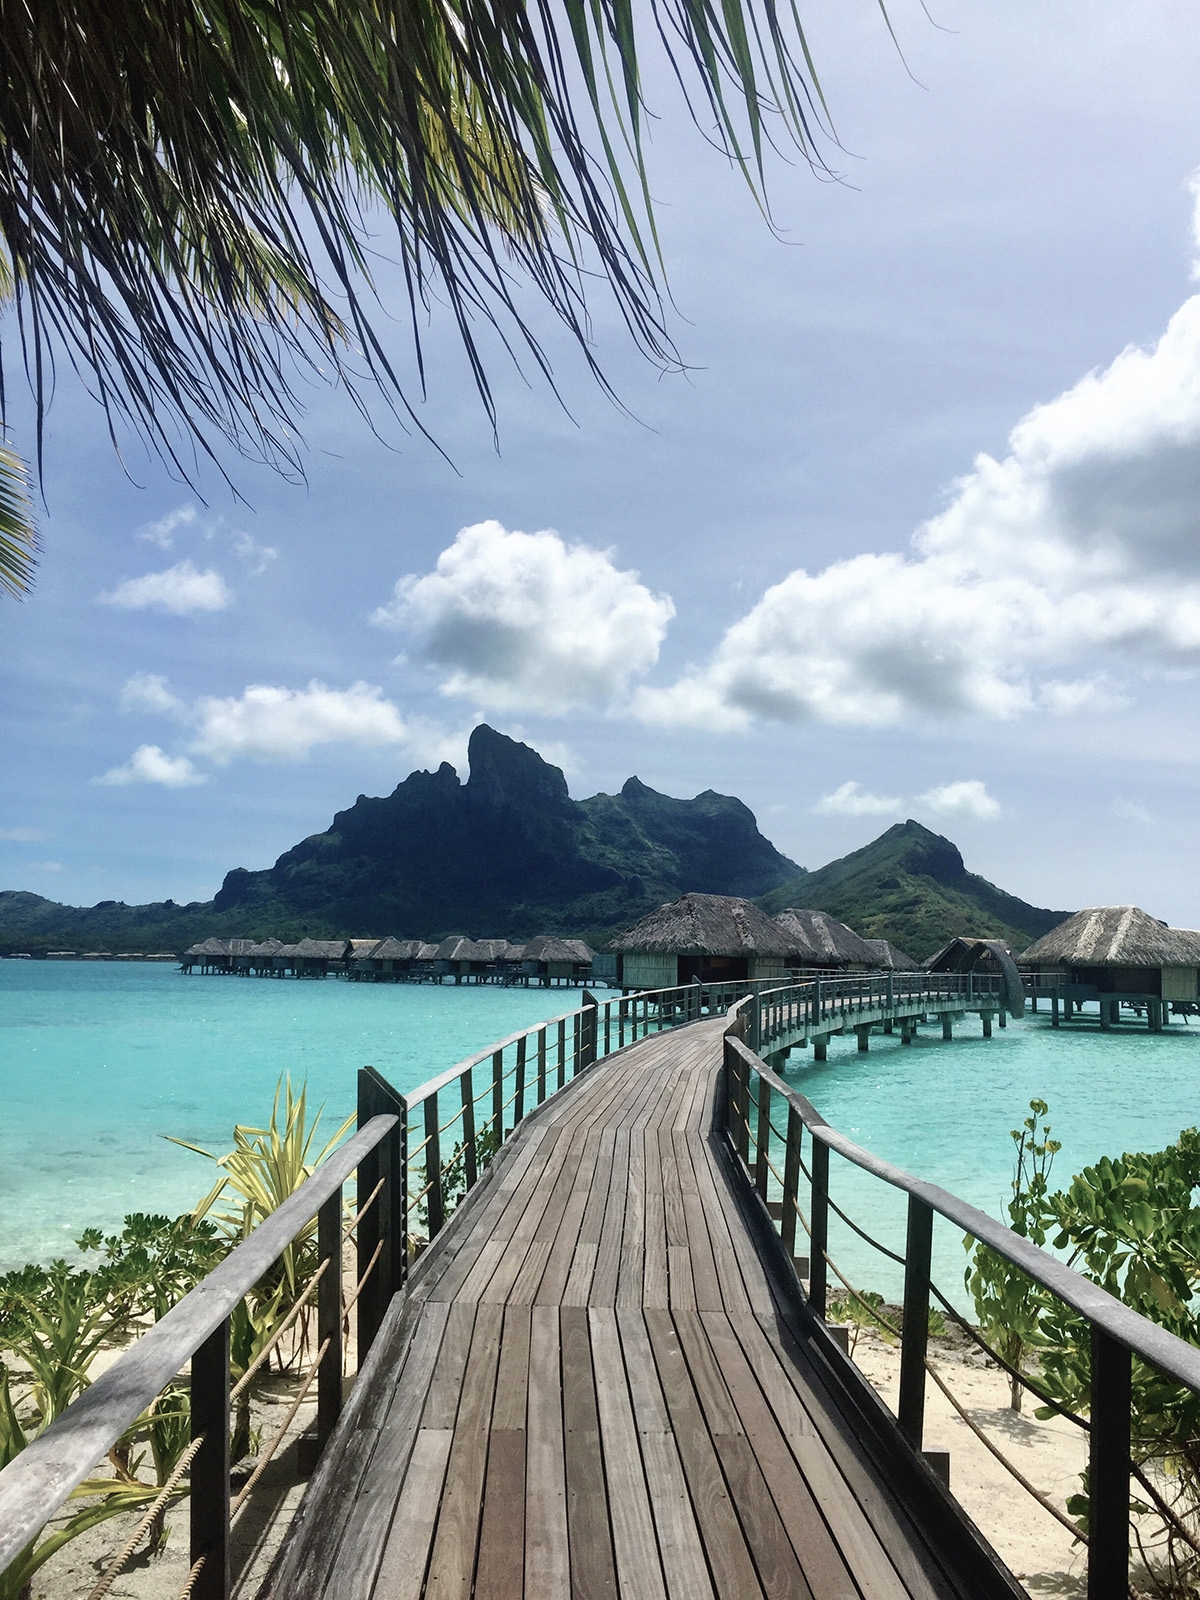 A wooden boardwalk leads to floating ocean villas with Mount Otemanu set in the background